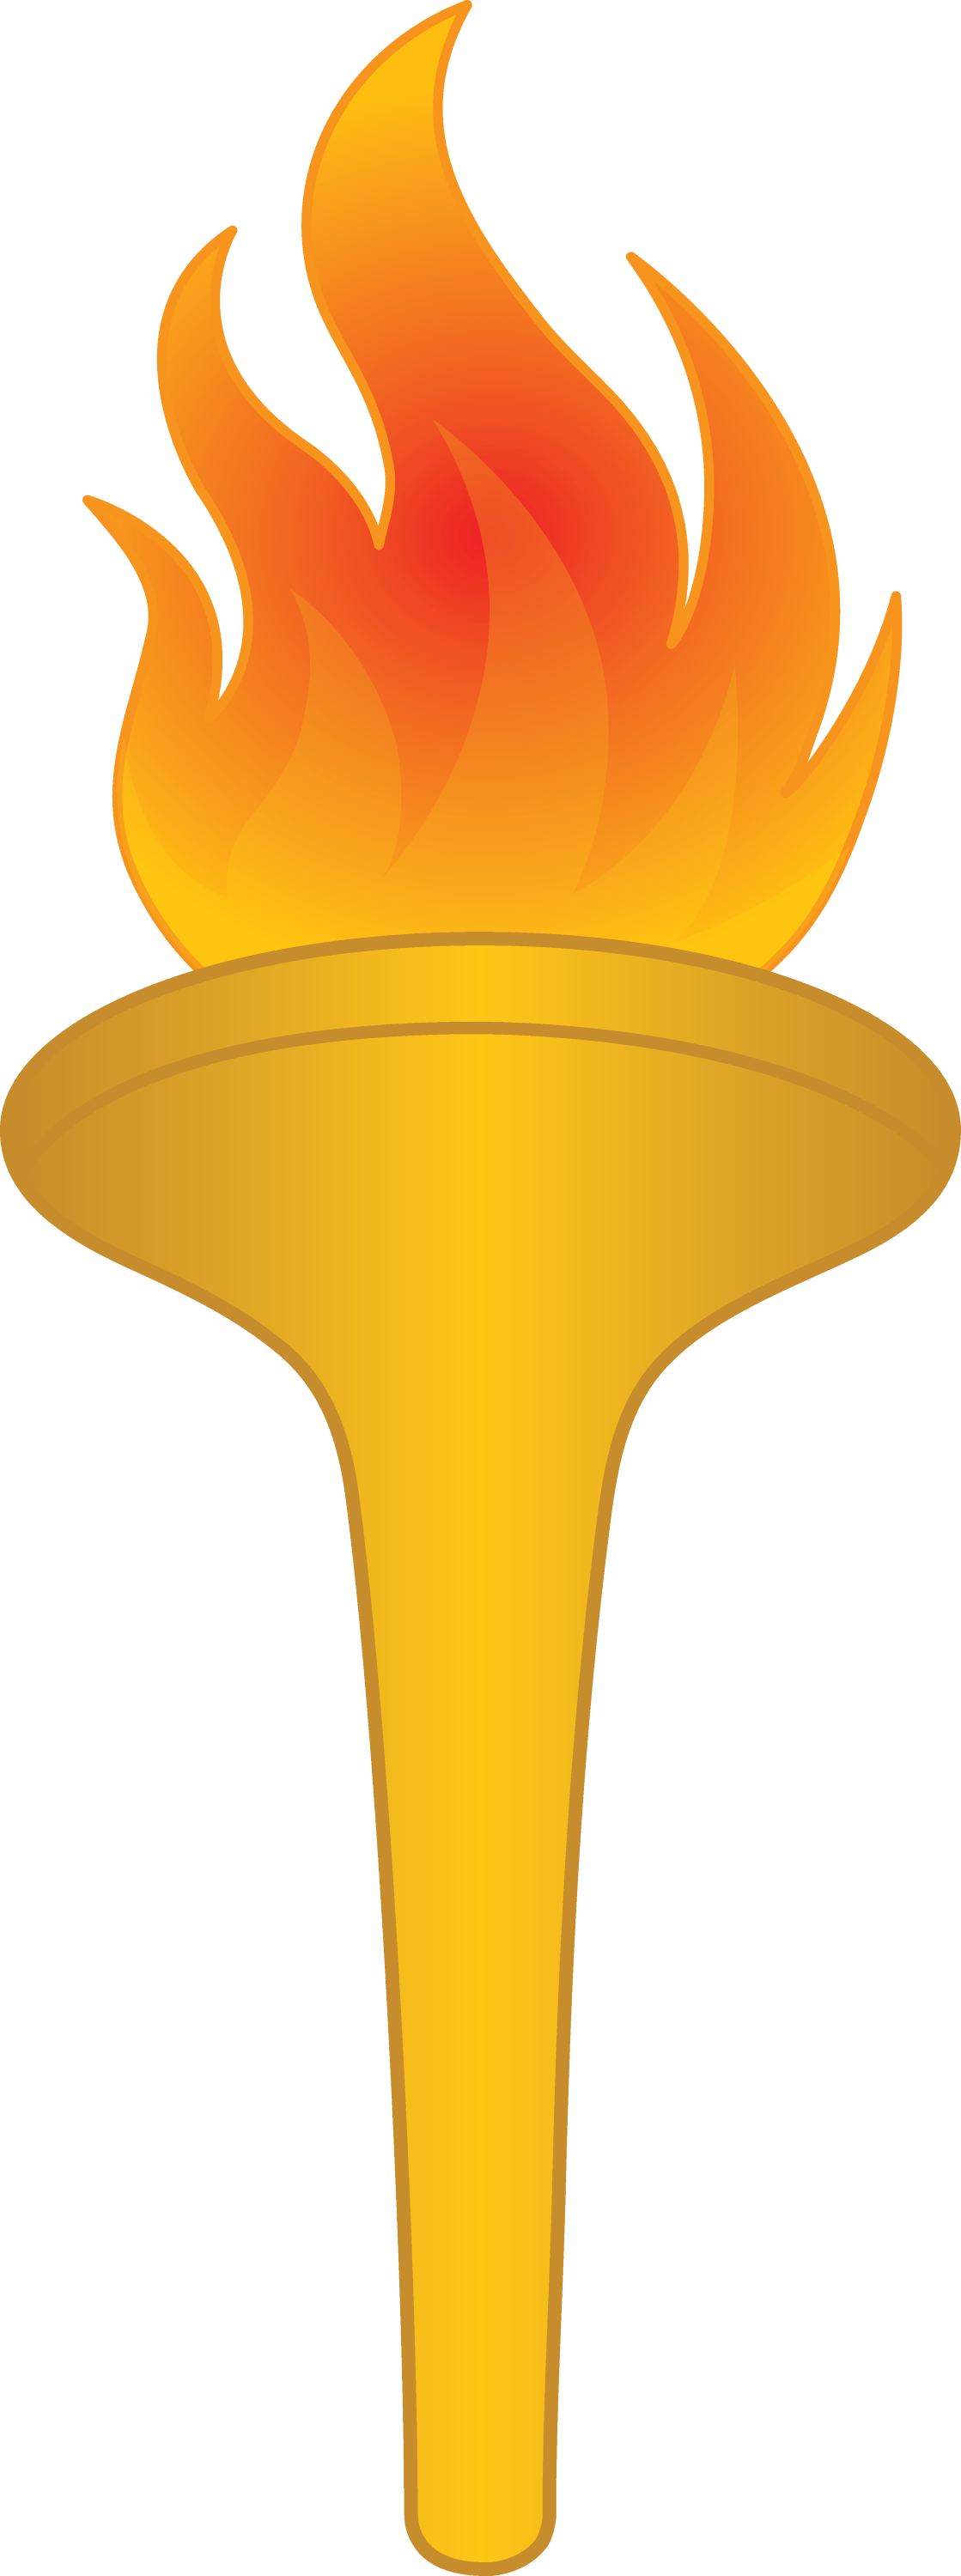 Olympic Torch Design